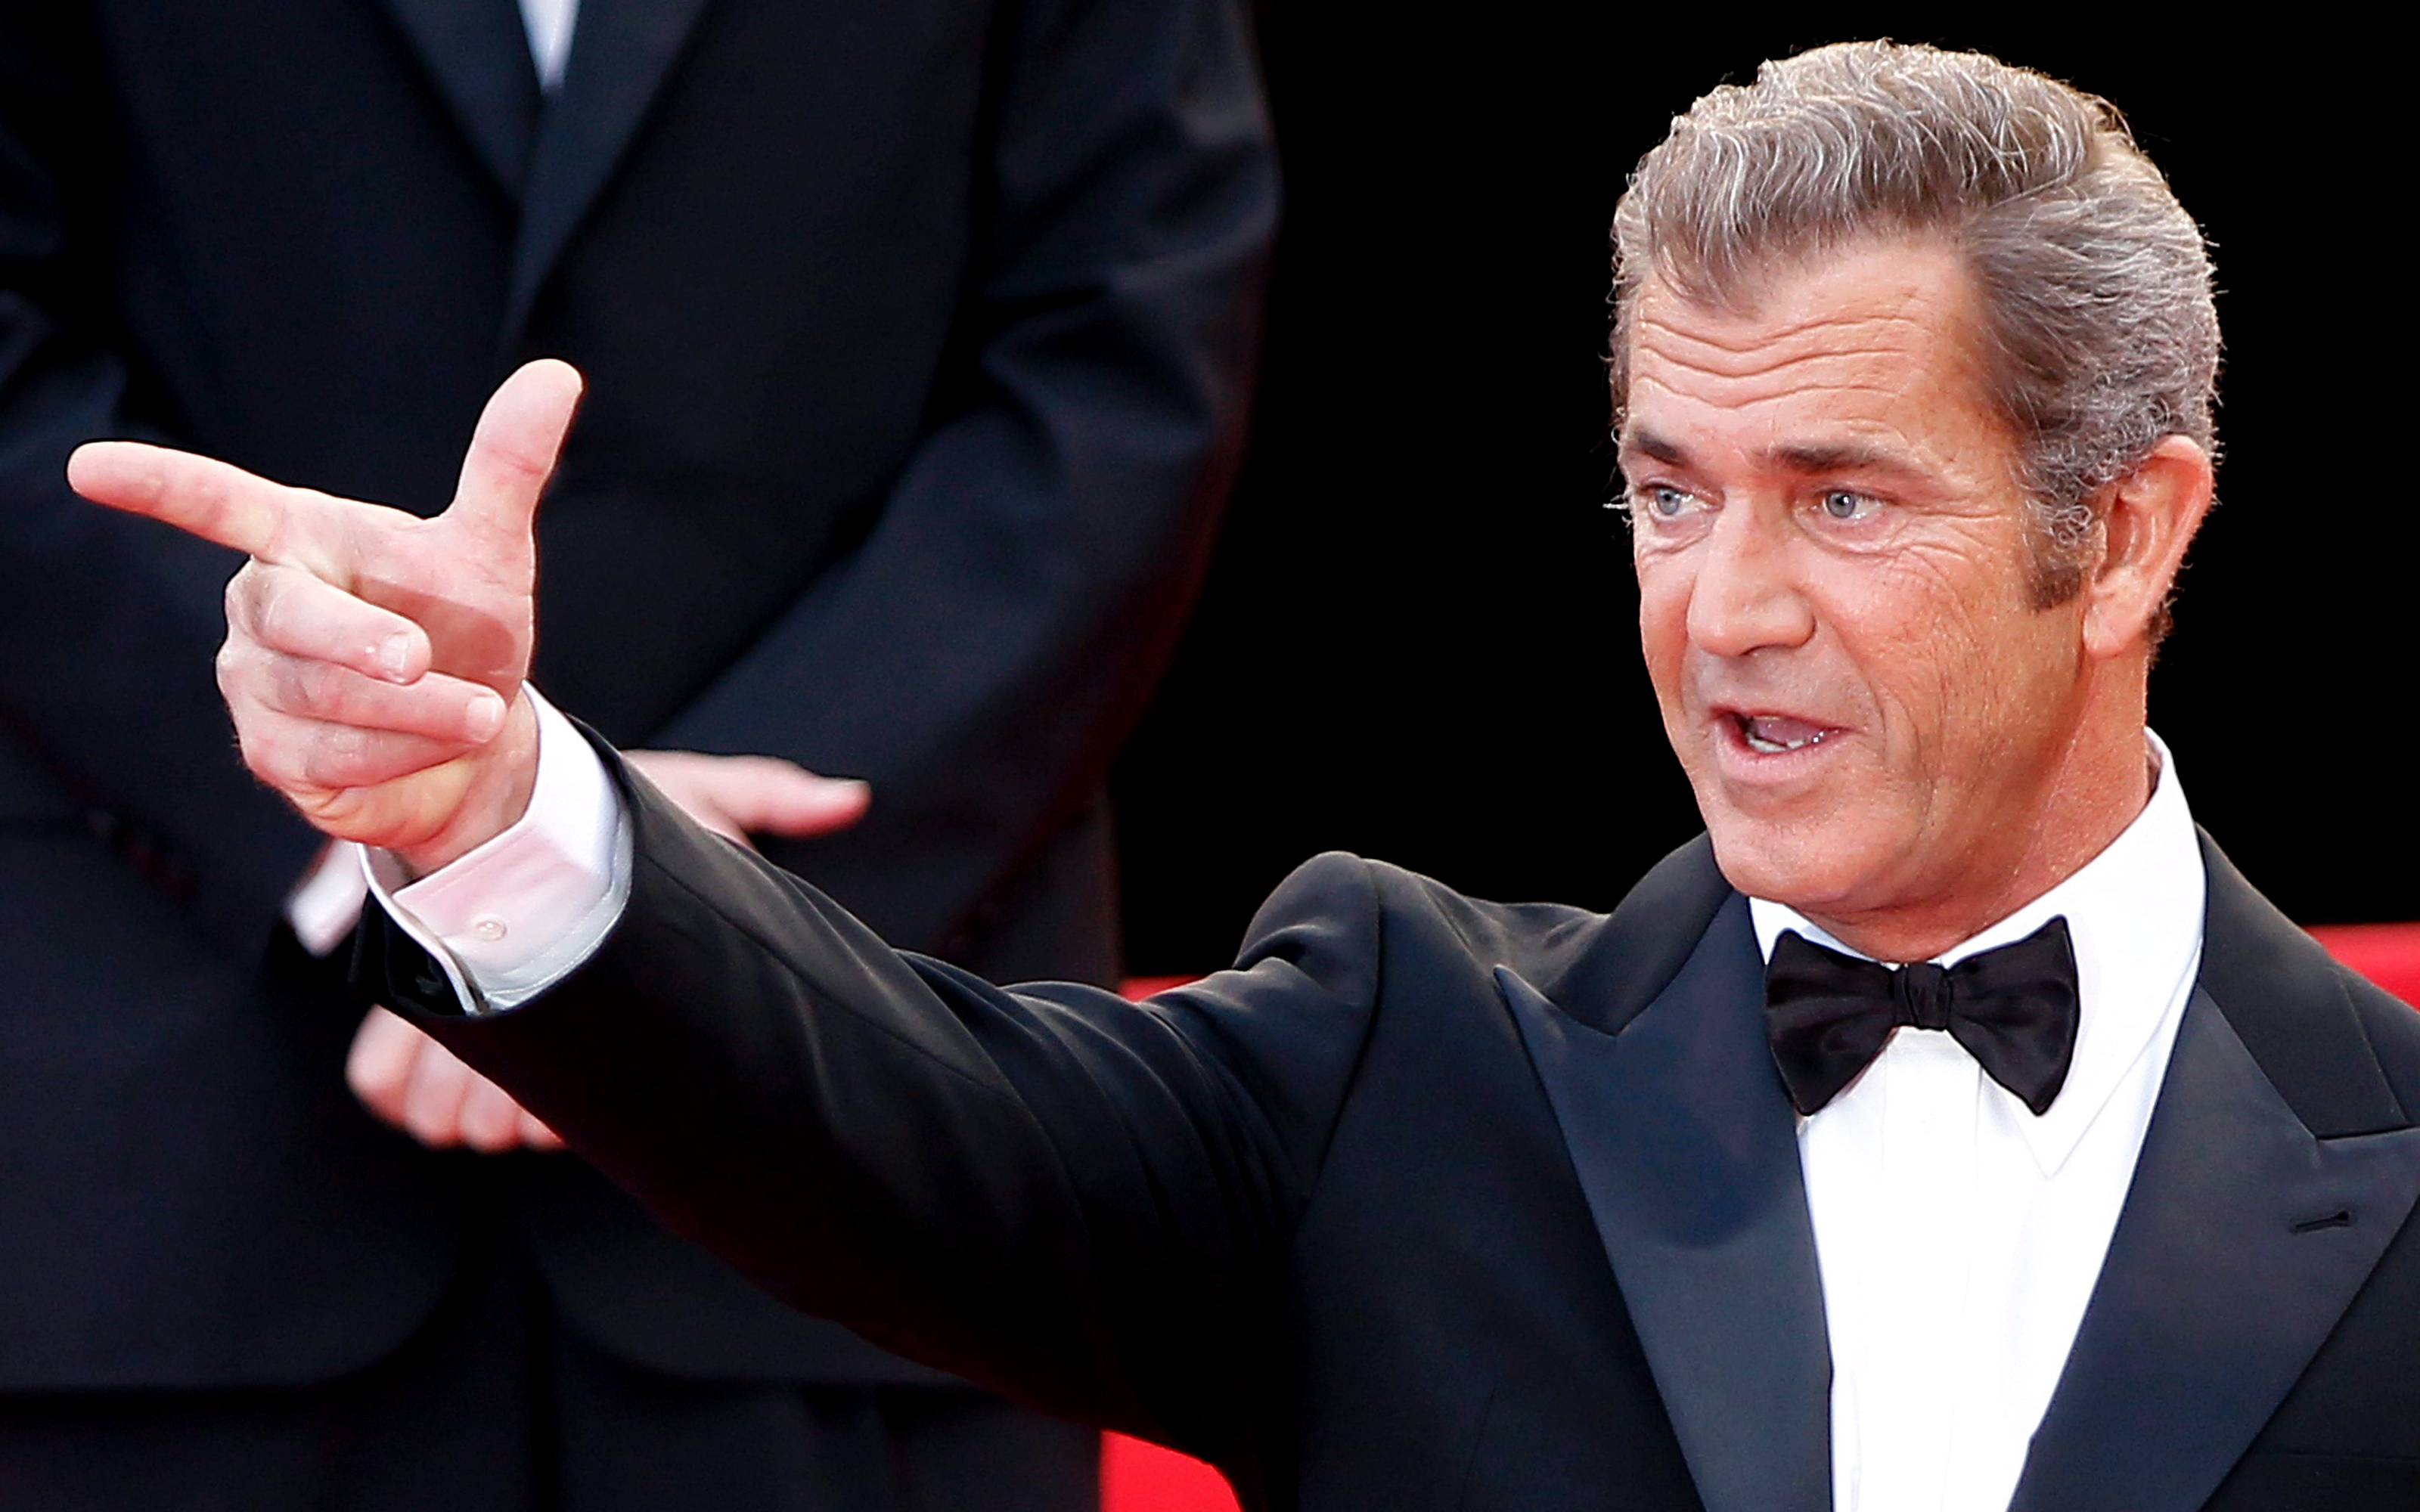 mel gibson back from hollywood siberia 2017 images